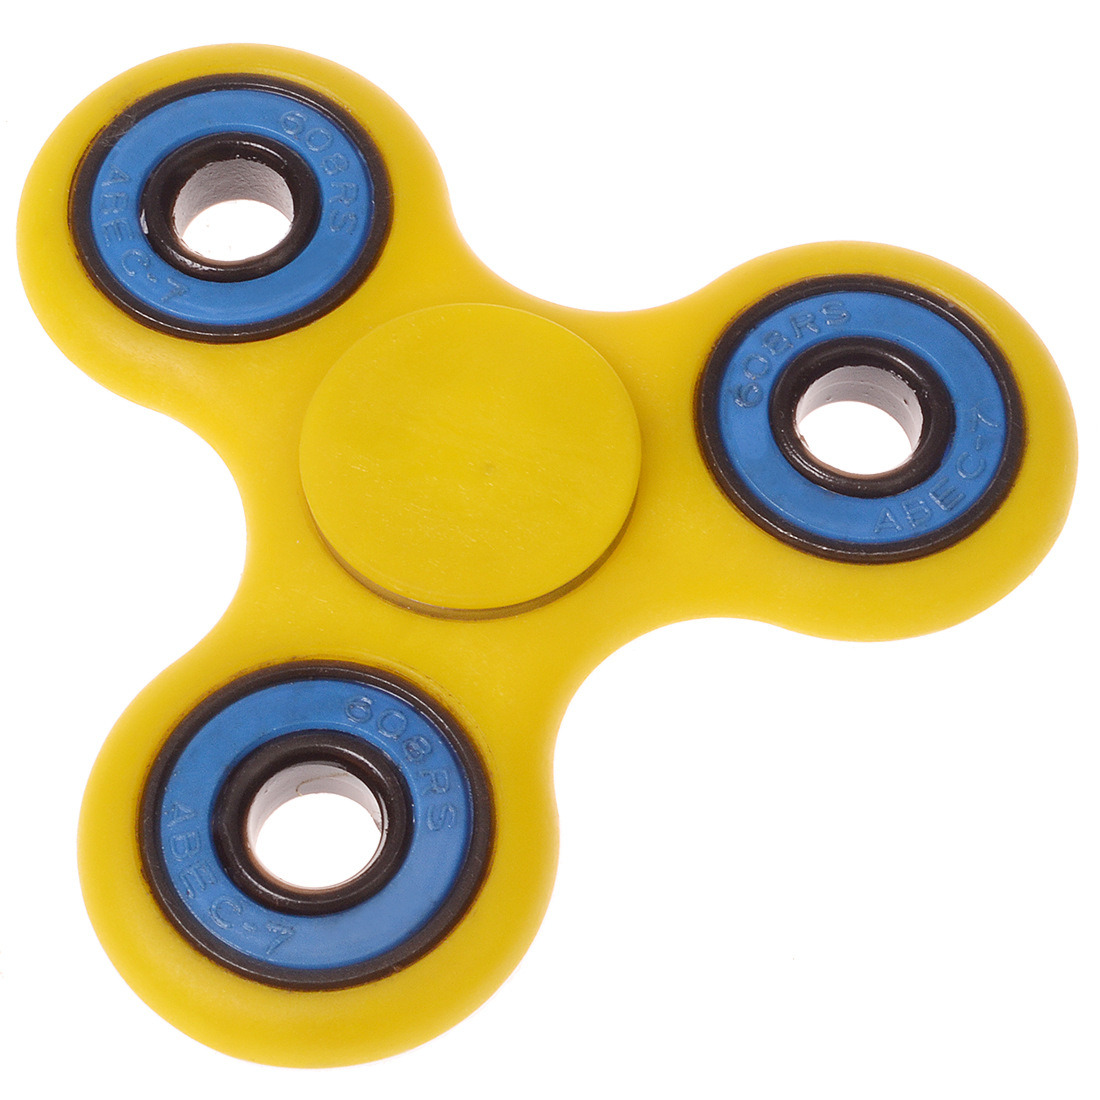 Stress Relief Anxiety Autism Toy Yellow Colorful Fidge Hand Spinner